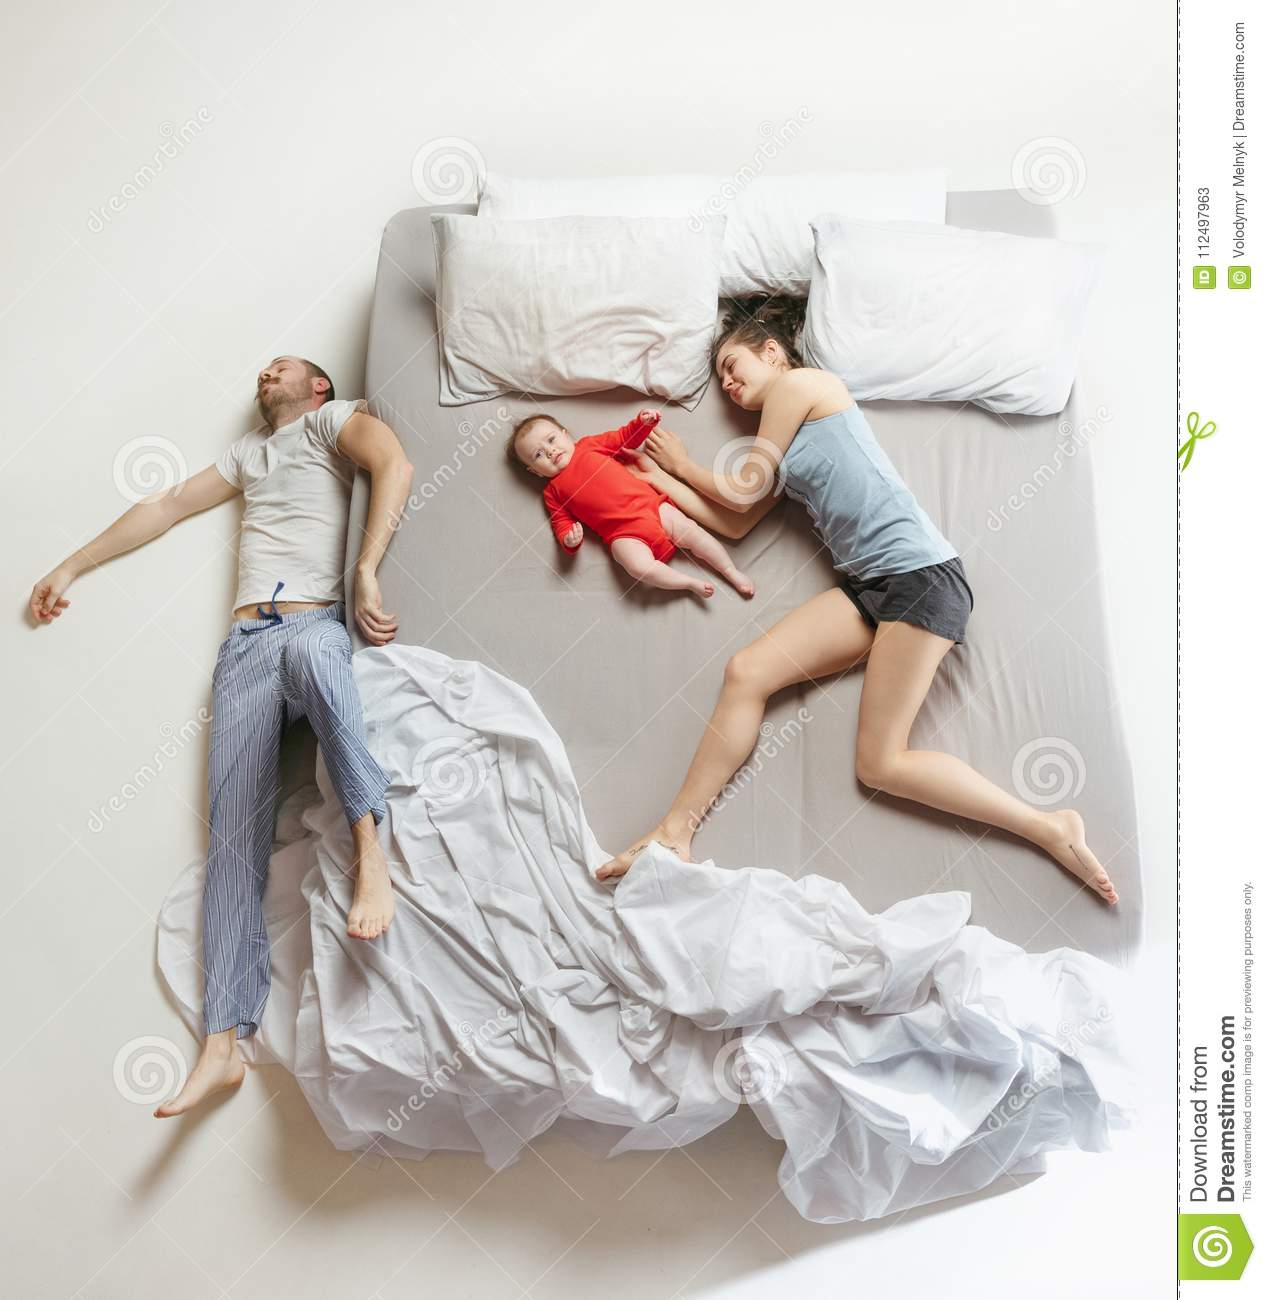 Top View Of Happy Family With One Newborn Child In Bedroom Stock Image Image Of Bedroom Baby 112497963